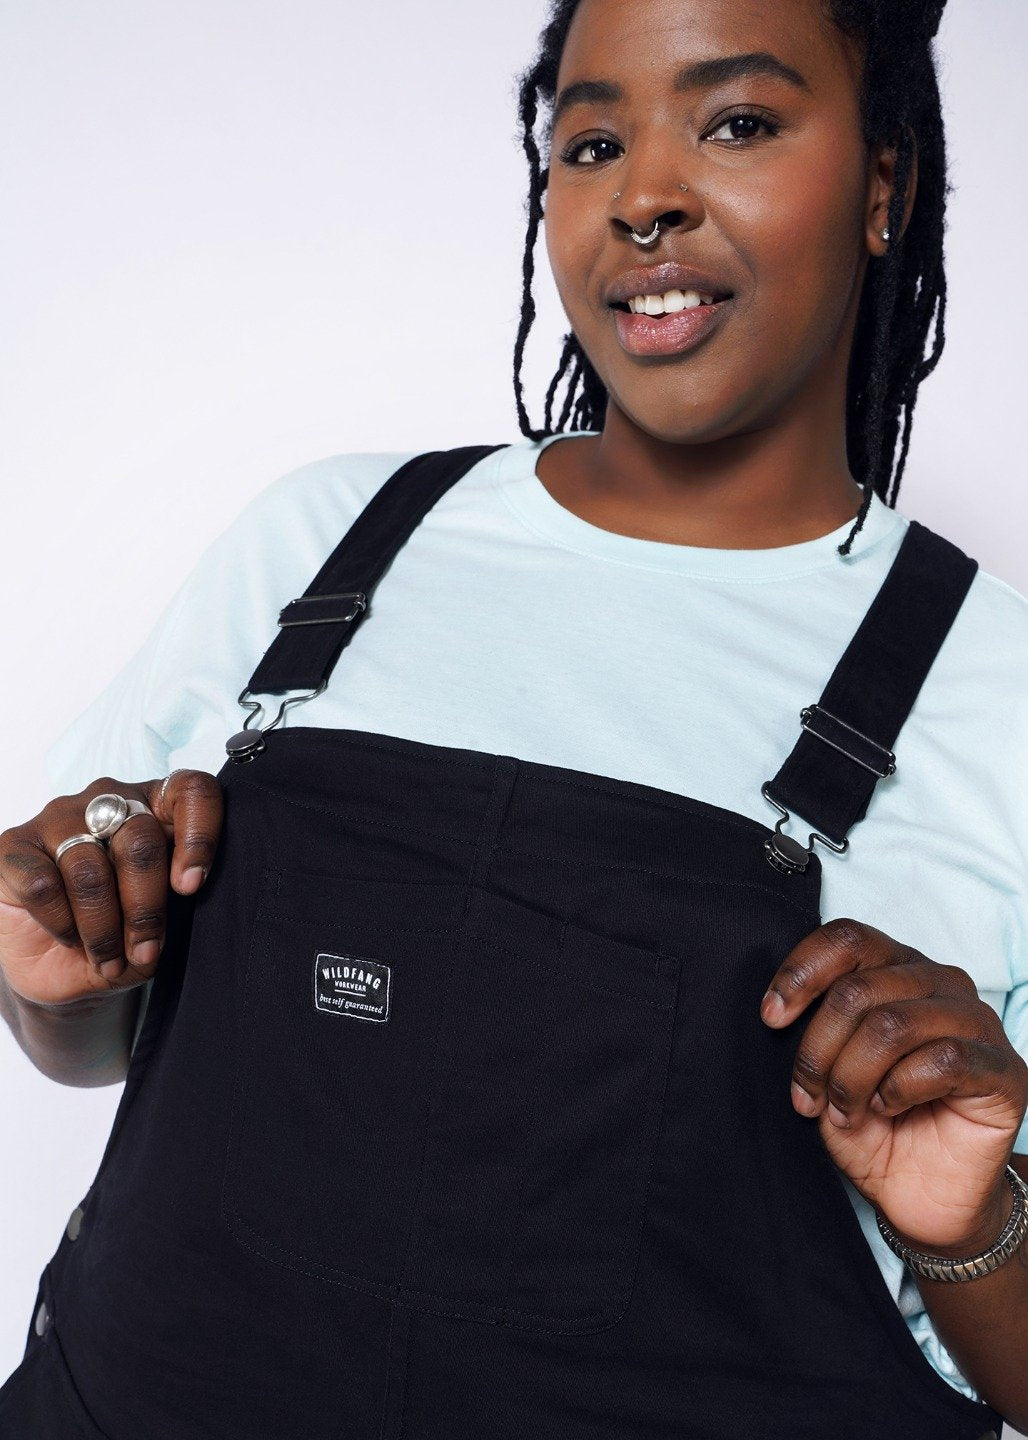 Model wearing black overalls with metal hardware in size XXL, with an blue tee underneath, holding front bib